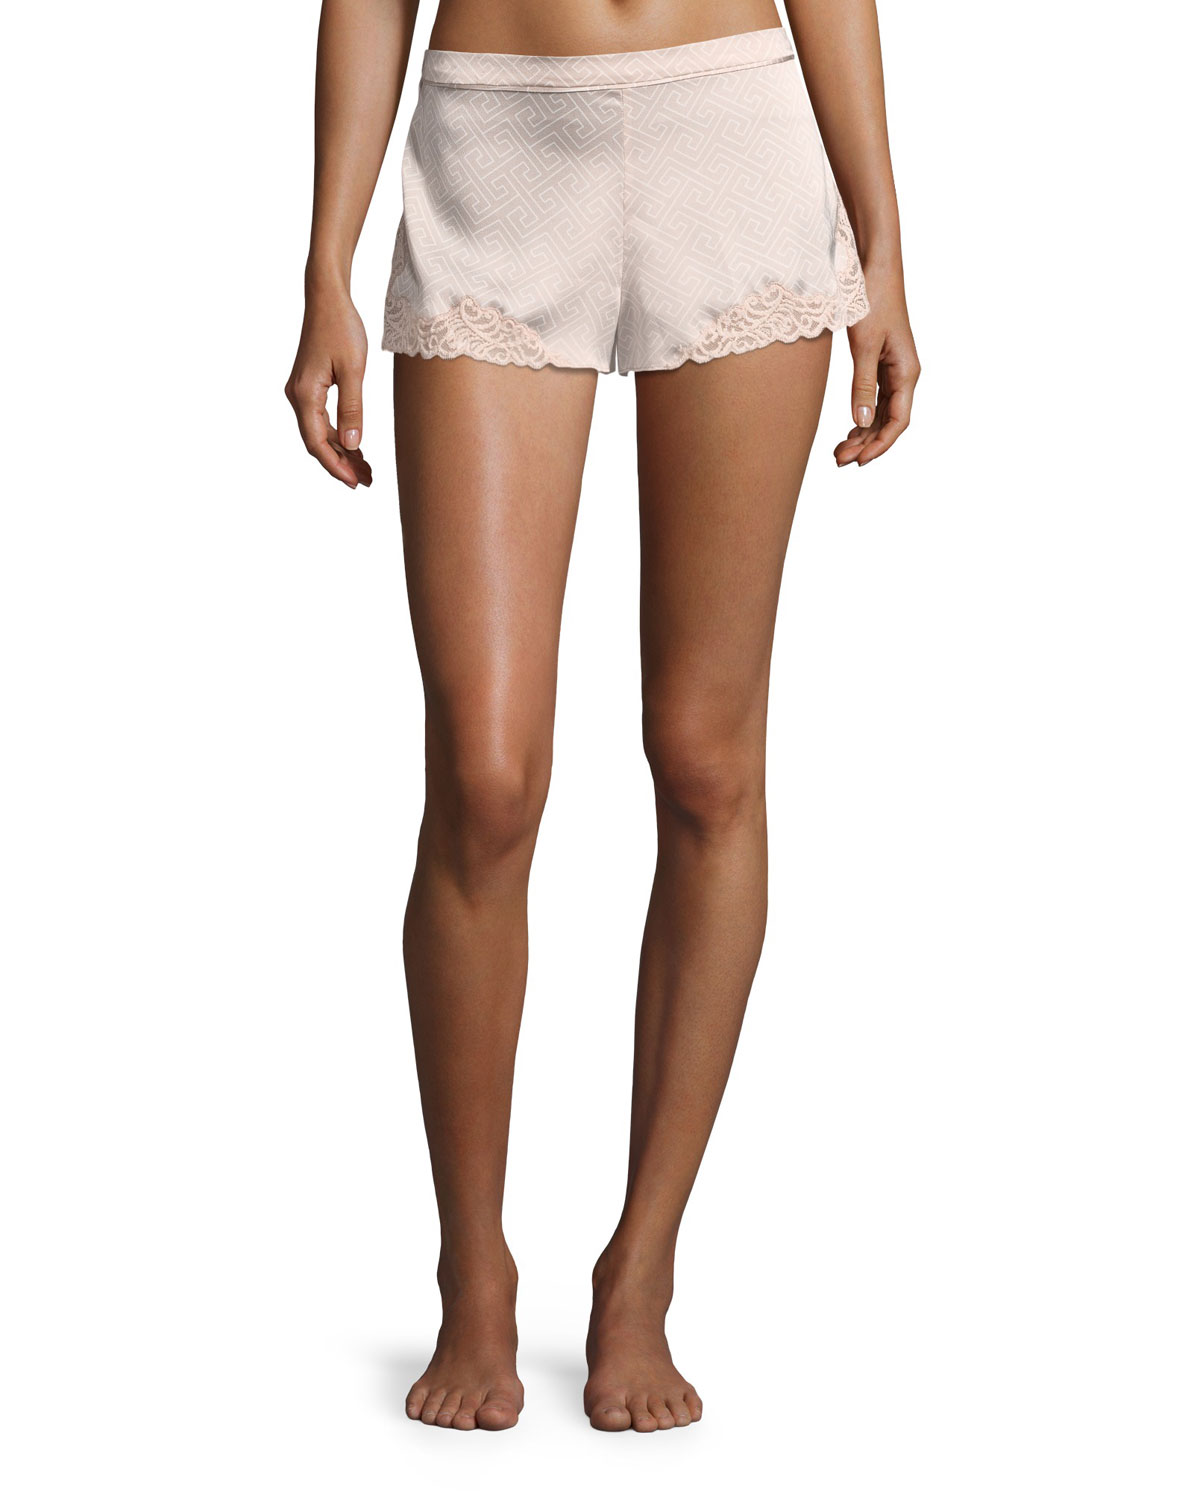 Labyrinth-Print Lace-Trim Satin Lounge Shorts